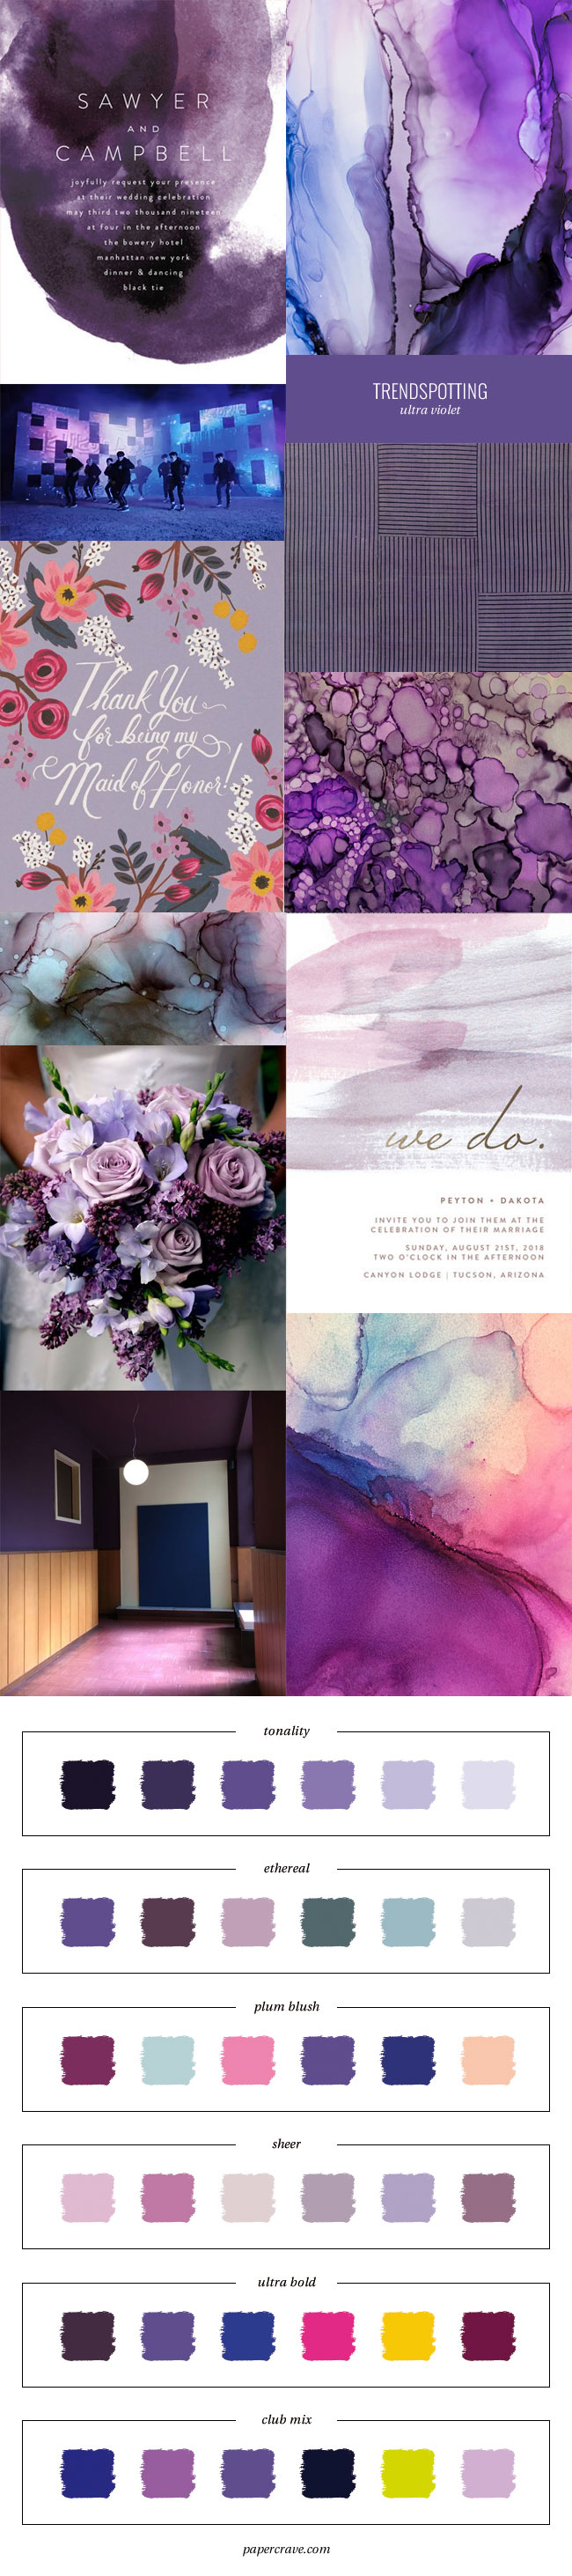 http://papercrave.com/wp-content/uploads/2017/12/trendspotting-ultra-violet-pantone-color-year-2018.jpg